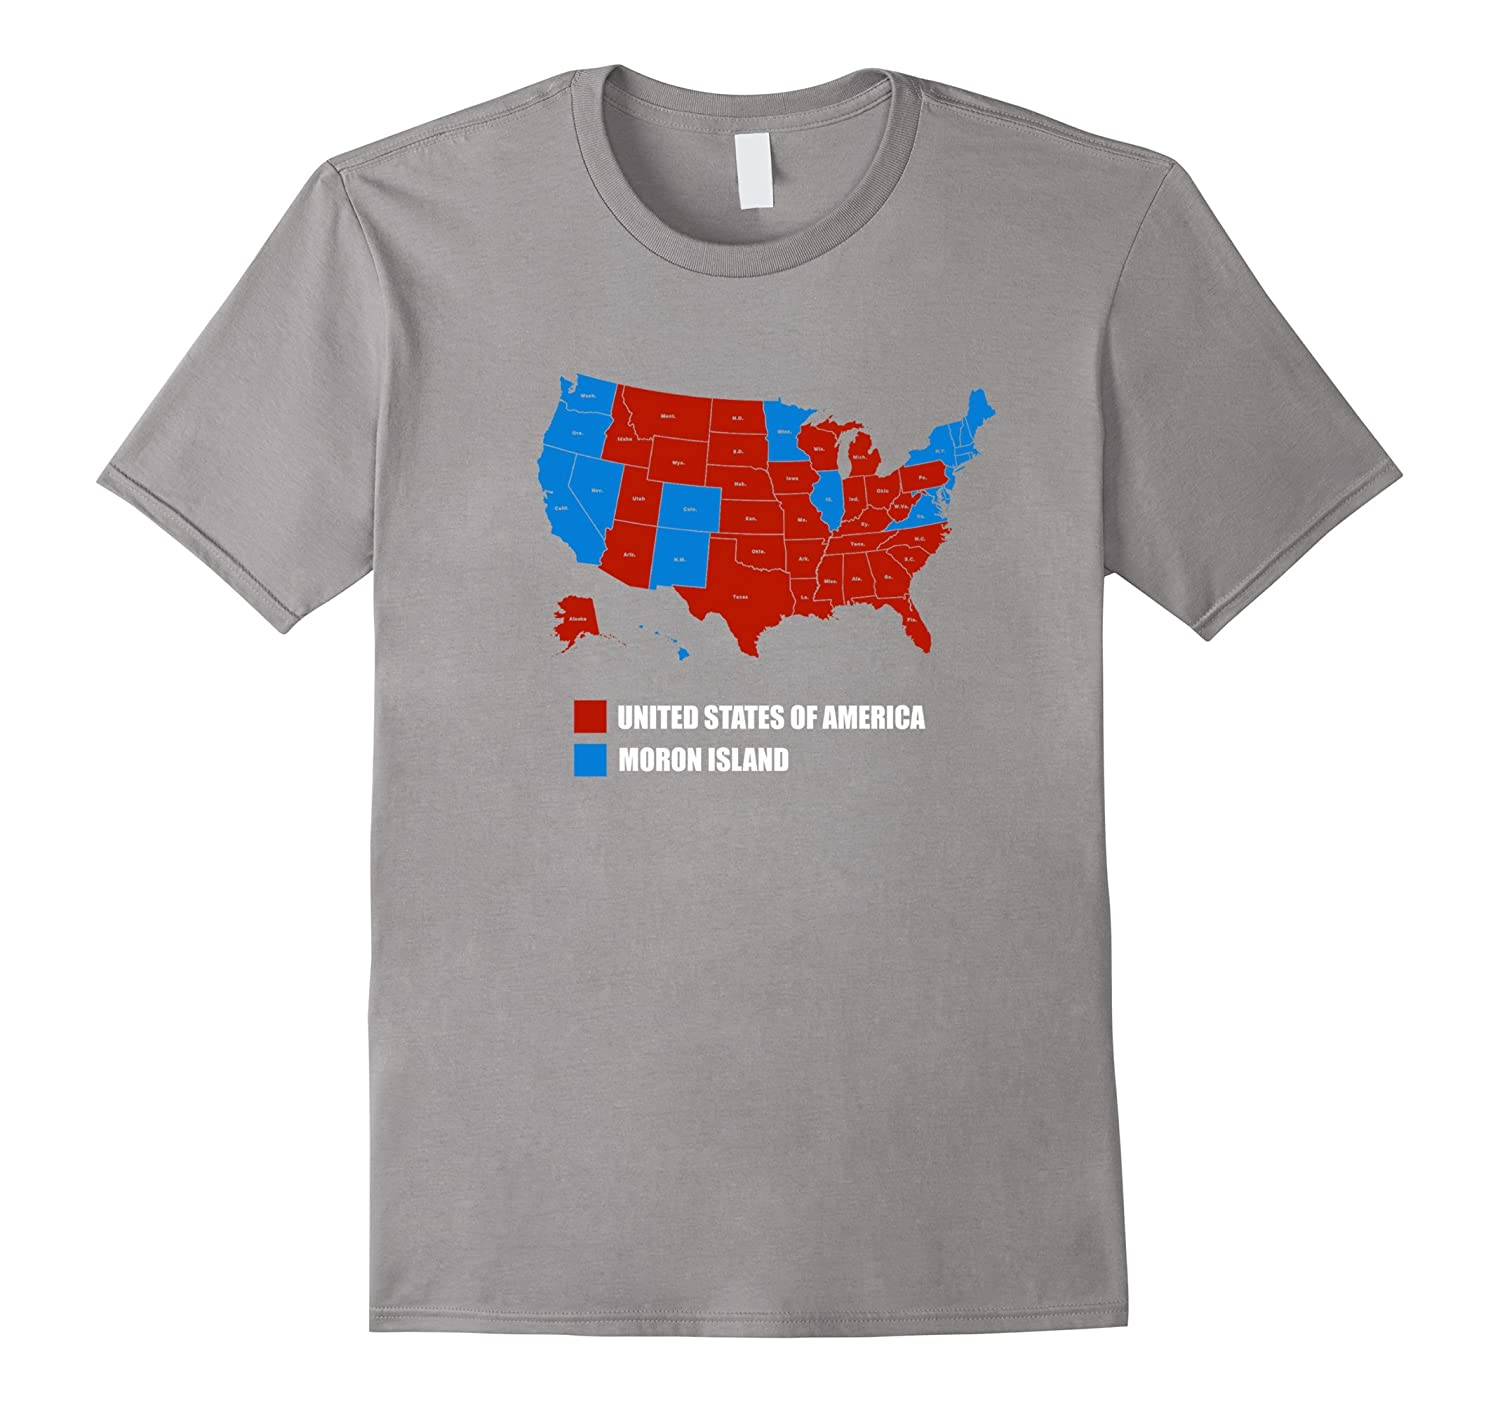 Funny T-Shirt: RED USA Election 2016 T Shirt Vote Trump Tee-Teevkd